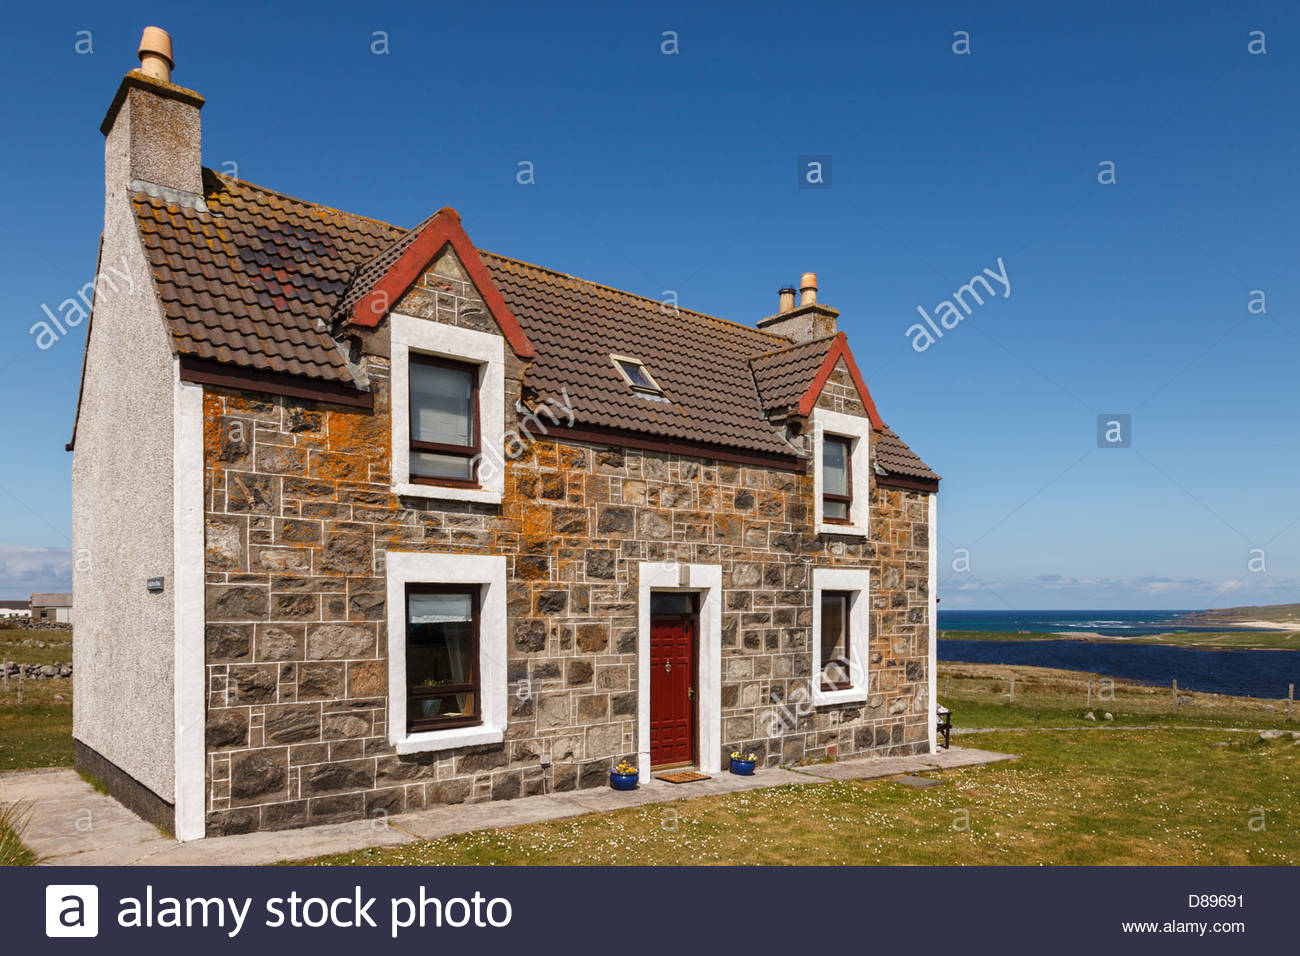 Oceanview (Sealladh na Mara), a traditional croft house in Brue, near Barvas, Isle of Lewis, Scotland - Stock Image